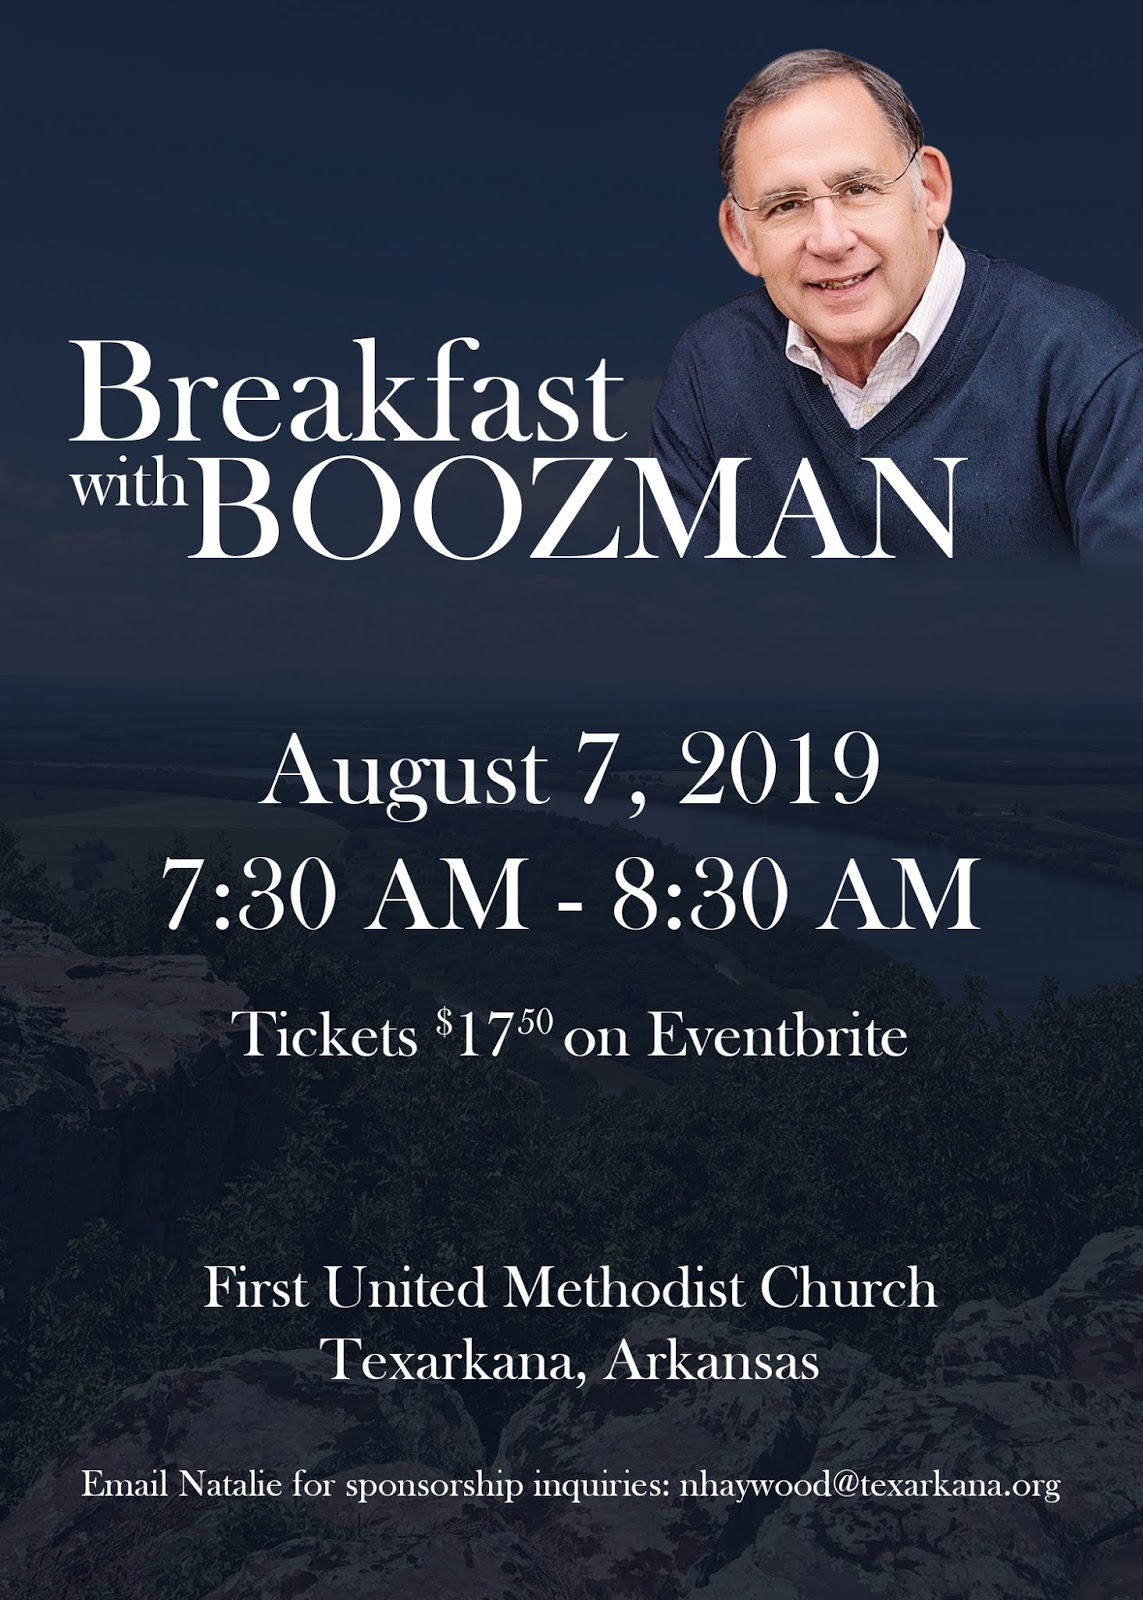 Chamber offers opportunity to have breakfast with a U.S. Senator